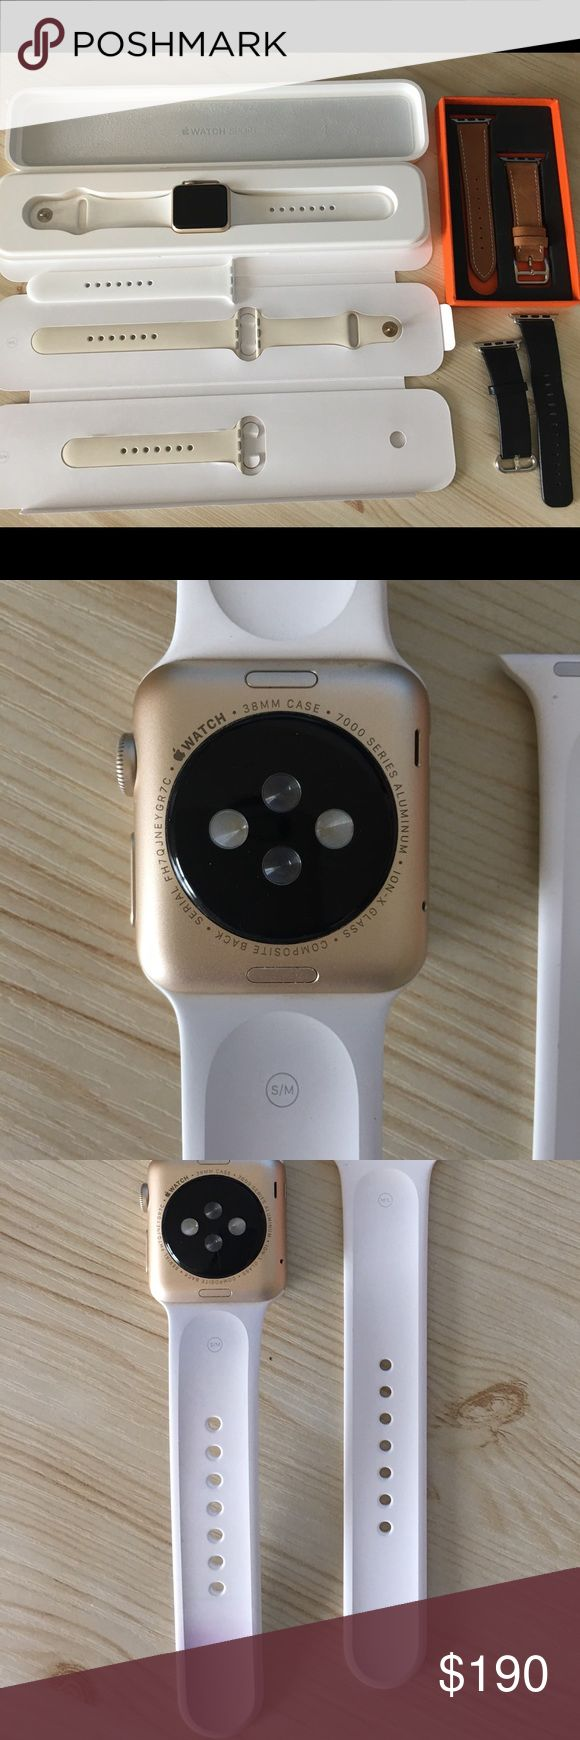 Gold 38mm Apple Watch Bundle-Series 7000: 2nd Gen. Great Condition Apple Watch Bundle Includes: * Gold 38mm Apple Watch (7000 series: Series 1 2nd Generation) *White Sport band (with some wear on backside as seen in photo but not noticeable when worn) *Antique White Sport Band (new condition) *Black and Brown Faux Leather Amazon Bands (both Greta condition) *NIP screen protector *charger cord and original packaging *works beautifully, no issues, I just don't use it as often as I use to Apple…